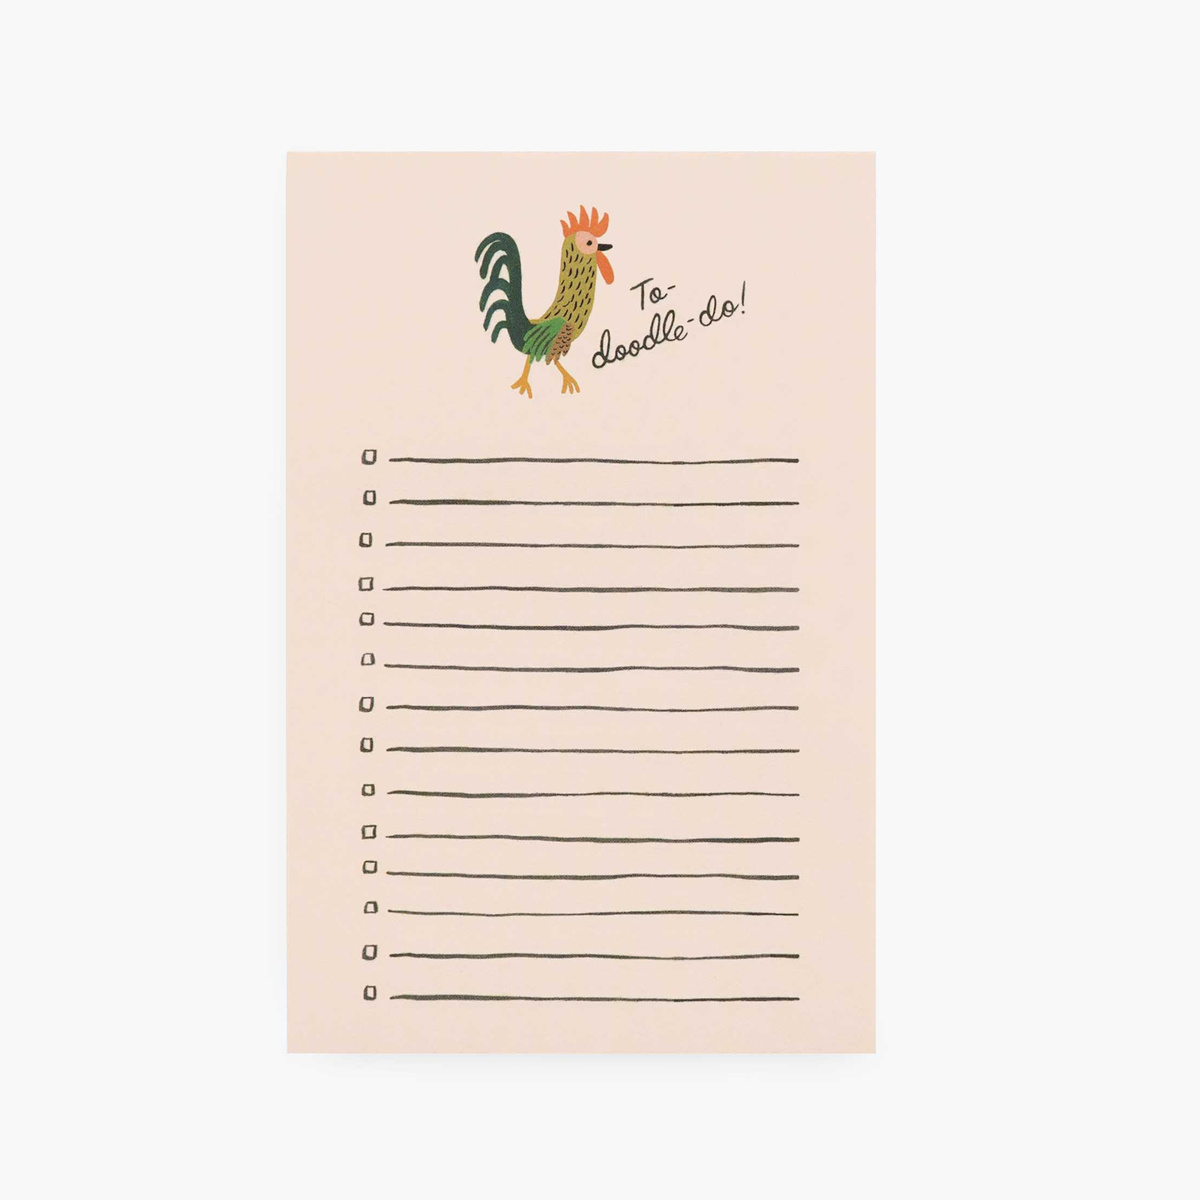 Rifle Paper Co. Rifle Paper Co - To Doodle Do Note Pad